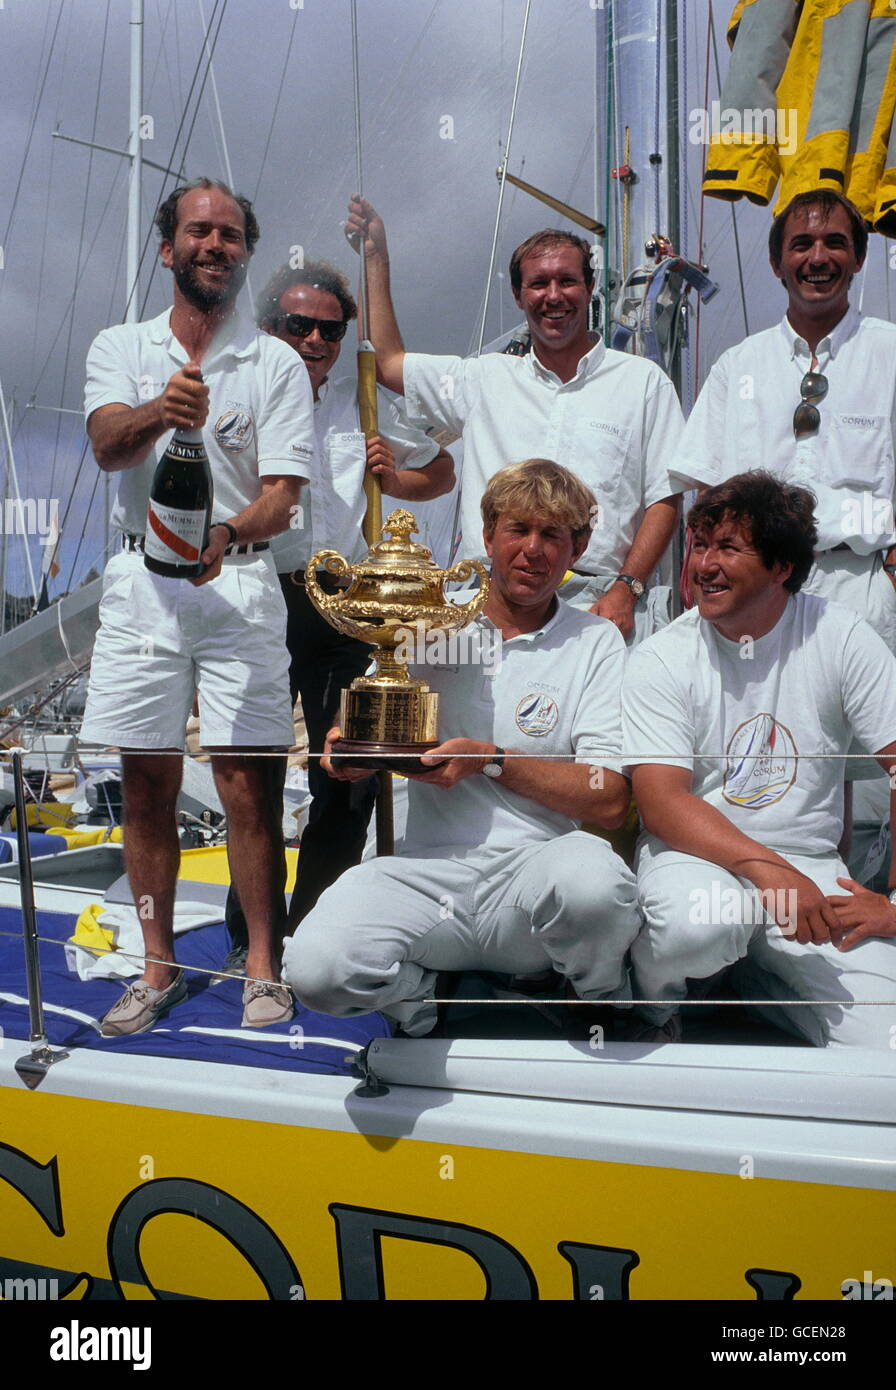 AJAXNETPHOTO. 15TH AUGUST,1991. PLYMOUTH, ENGLAND. - ADMIRAL'S CUP VICTORS - THE FRENCH YACHTING TEAM LEADERS - Stock Image